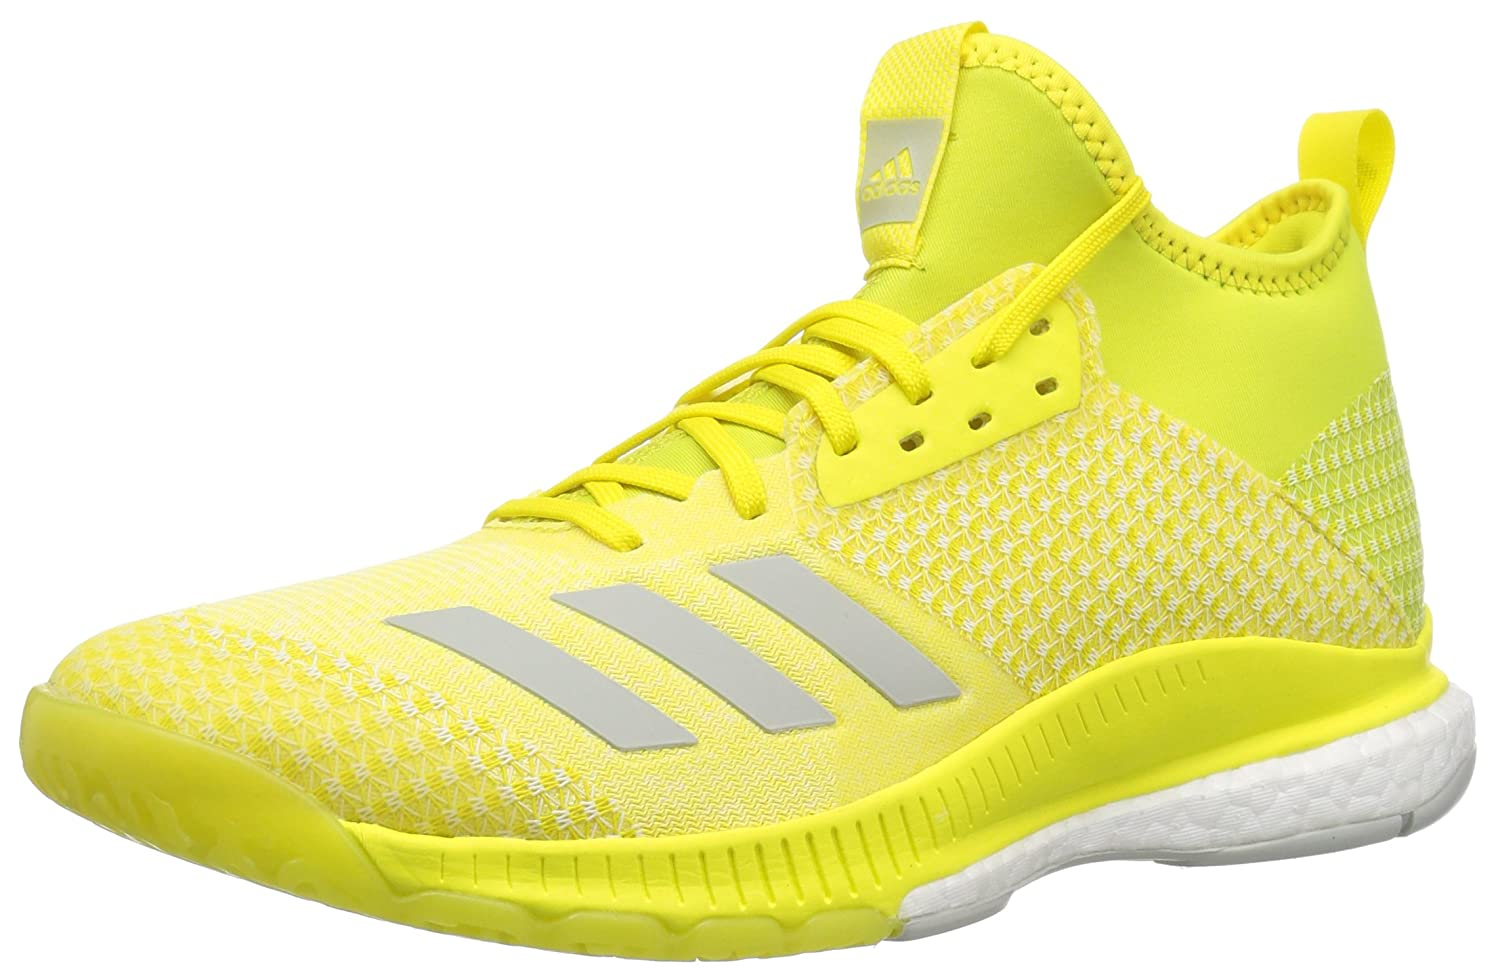 adidas Women's Crazyflight X B077X5BZGX 2 Mid Volleyball Shoe B077X5BZGX X 5 B(M) US|Shock Yellow/Ash Silver/White 177adf